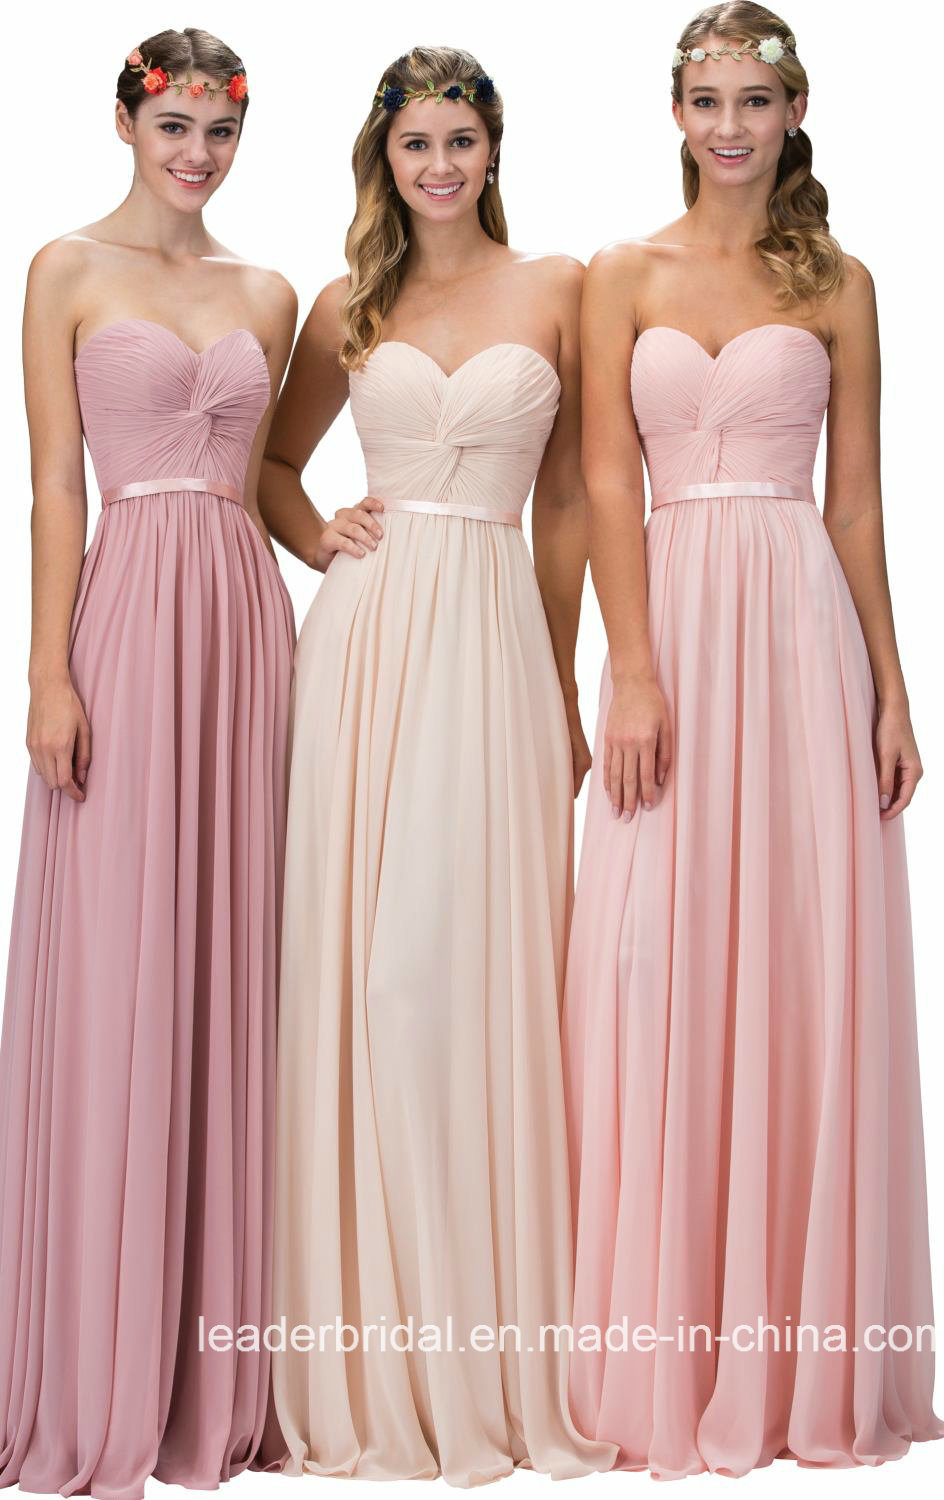 2017 Cocktail Homecoming Dresses Empire Bridesmaid Dress G11385